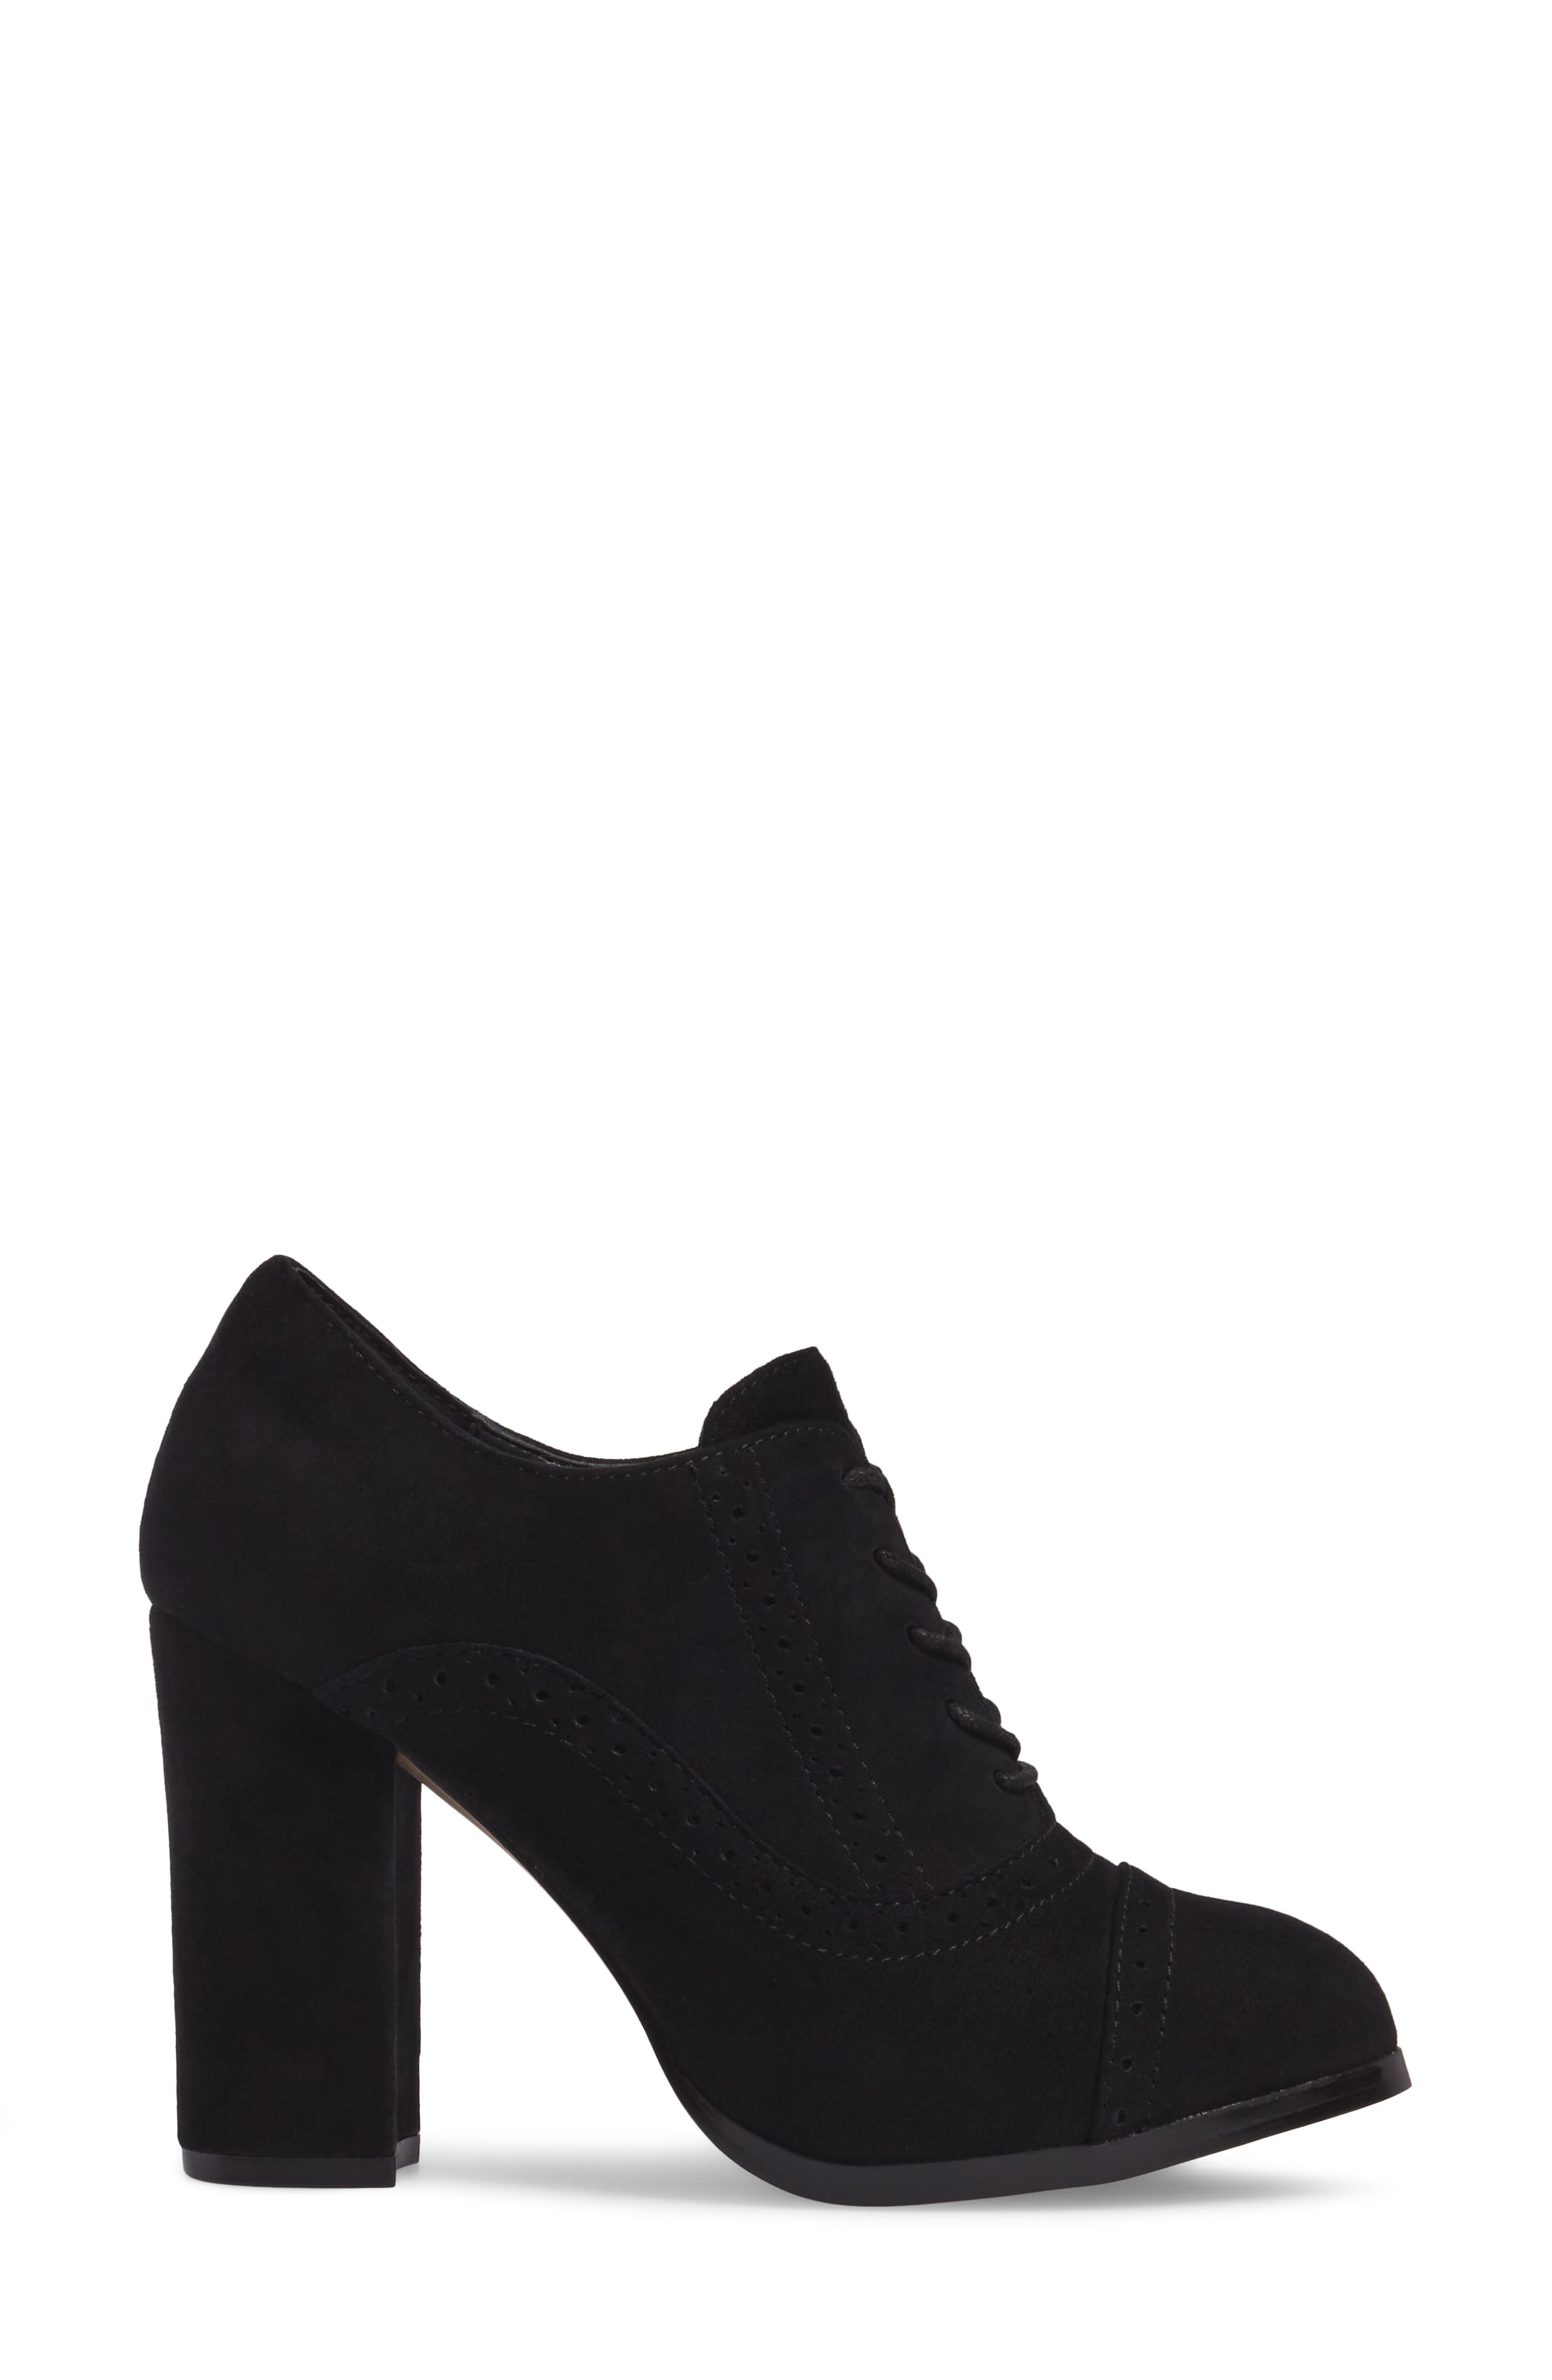 ISOLÁ, Holli Oxford Pump, Alternate thumbnail 3, color, BLACK SUEDE